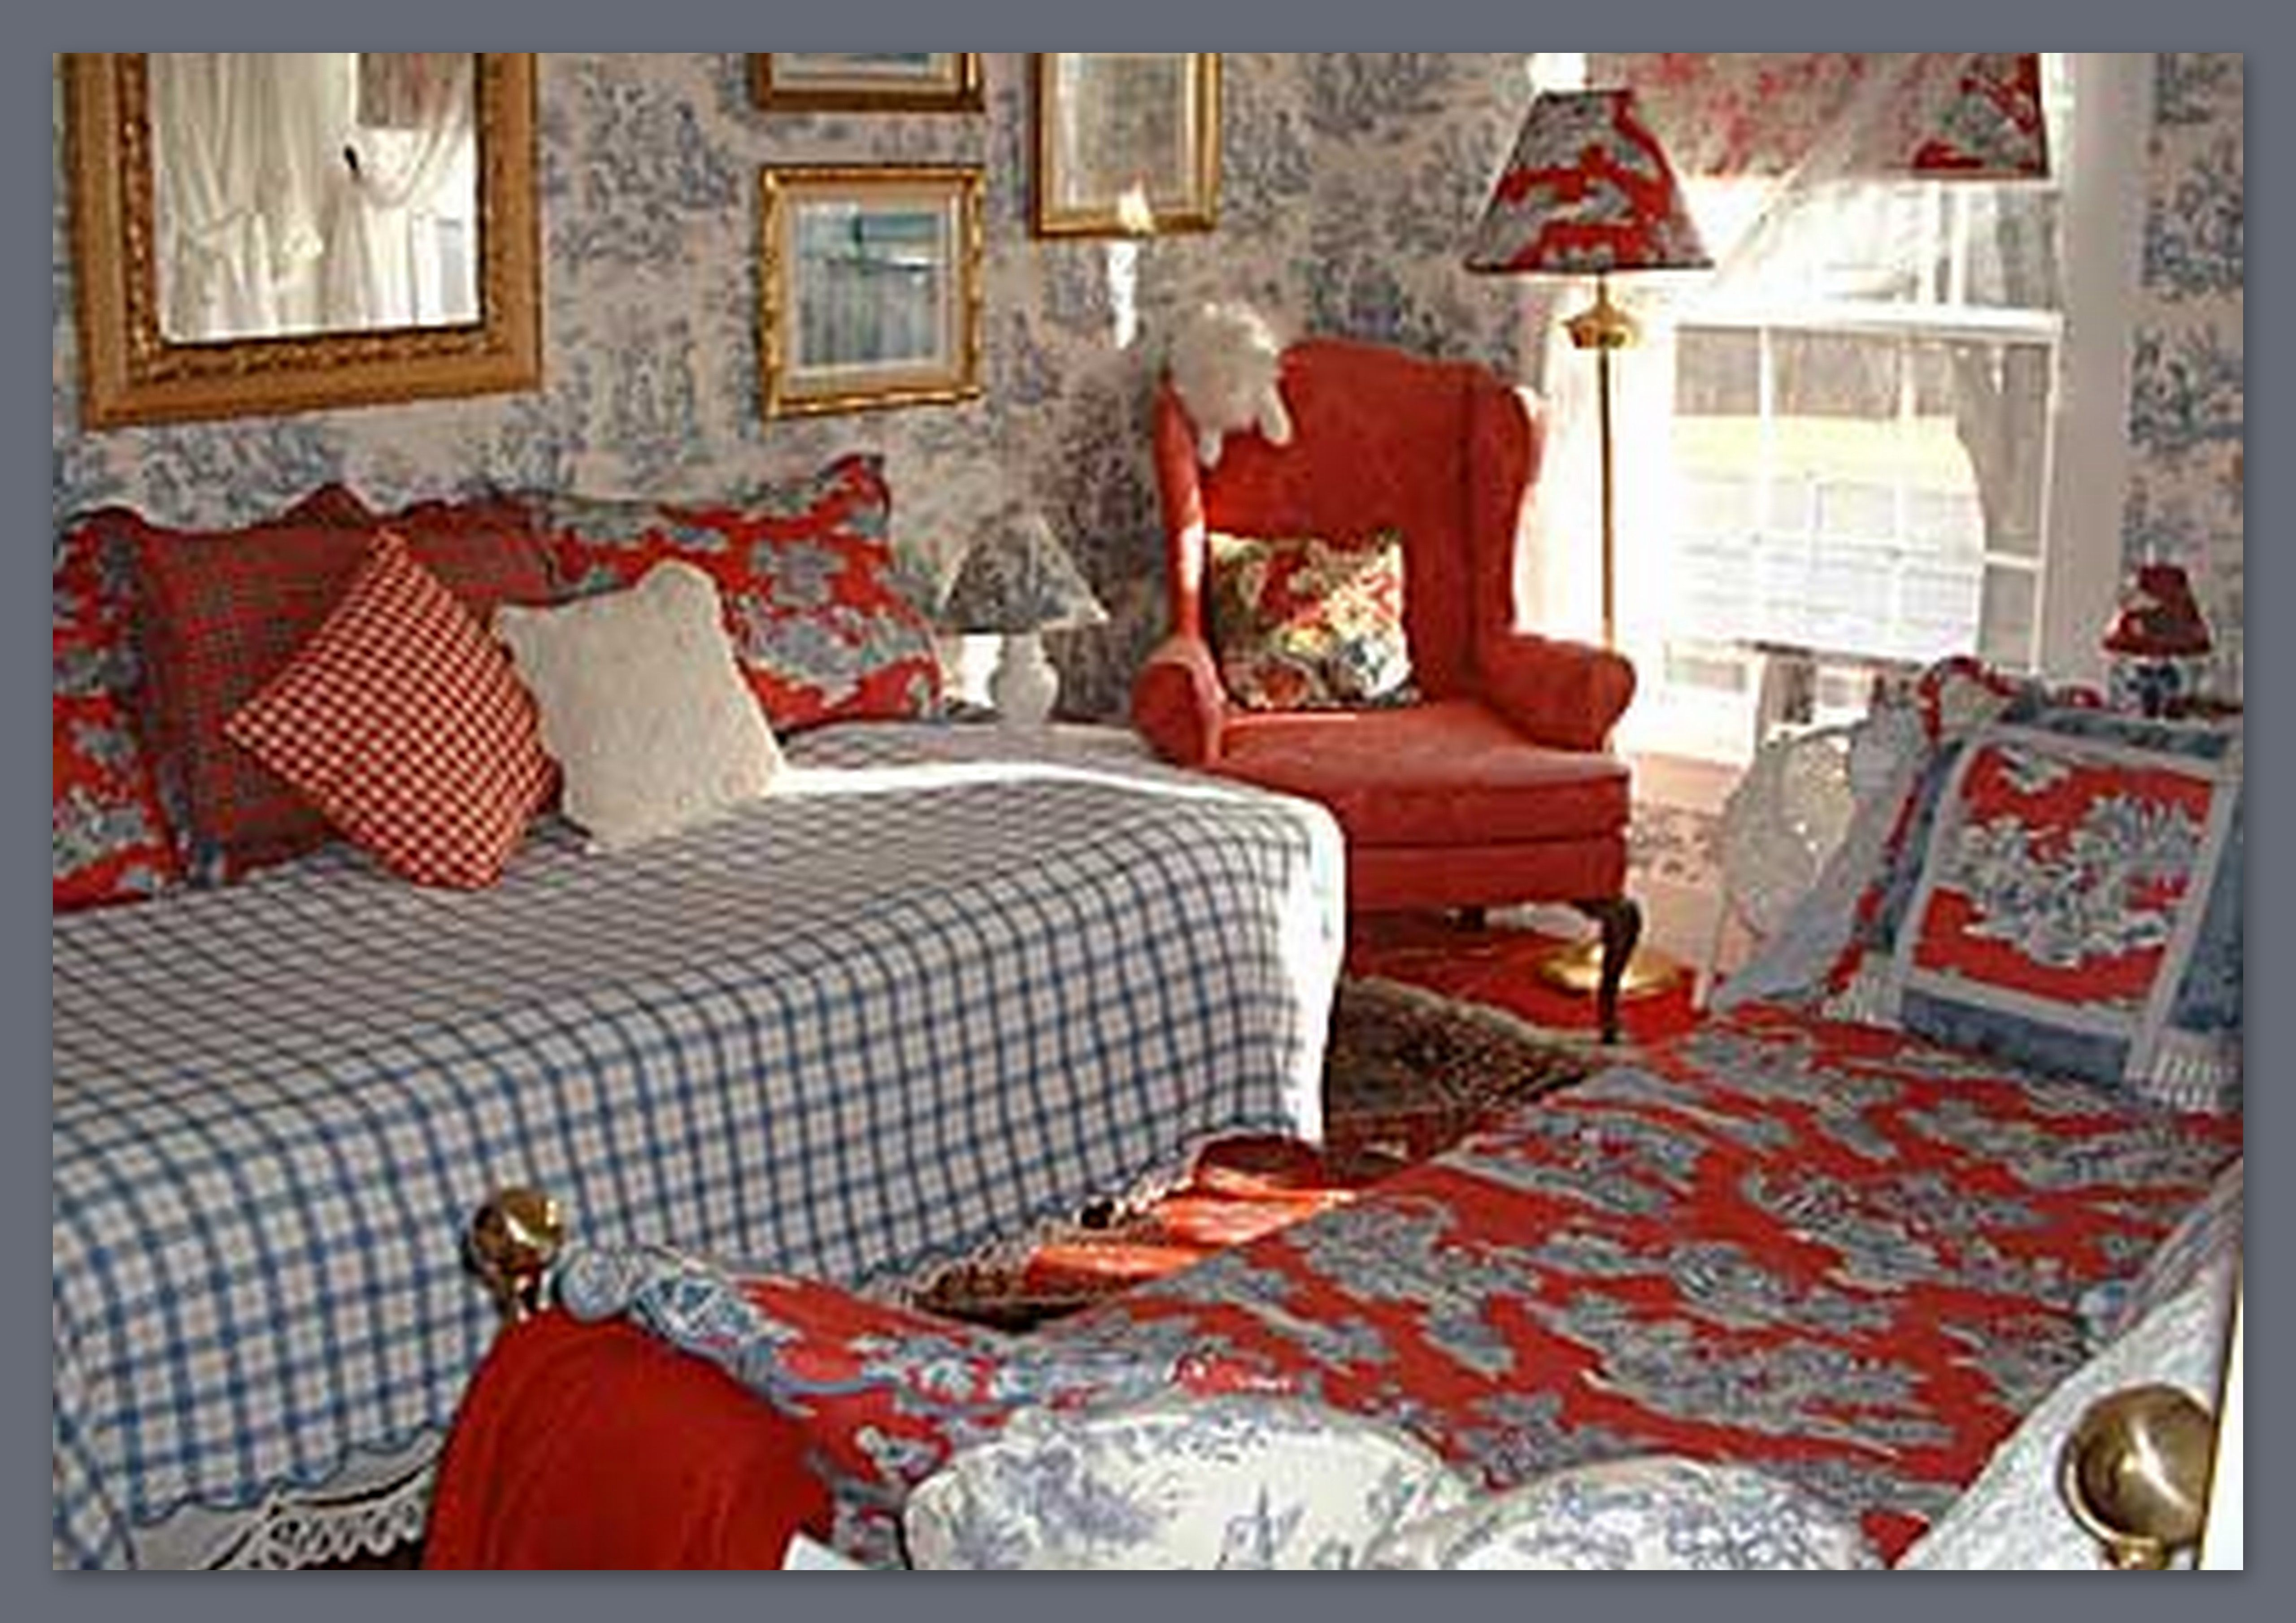 Blue And White Toile Bedroom: Red And Blue Toile